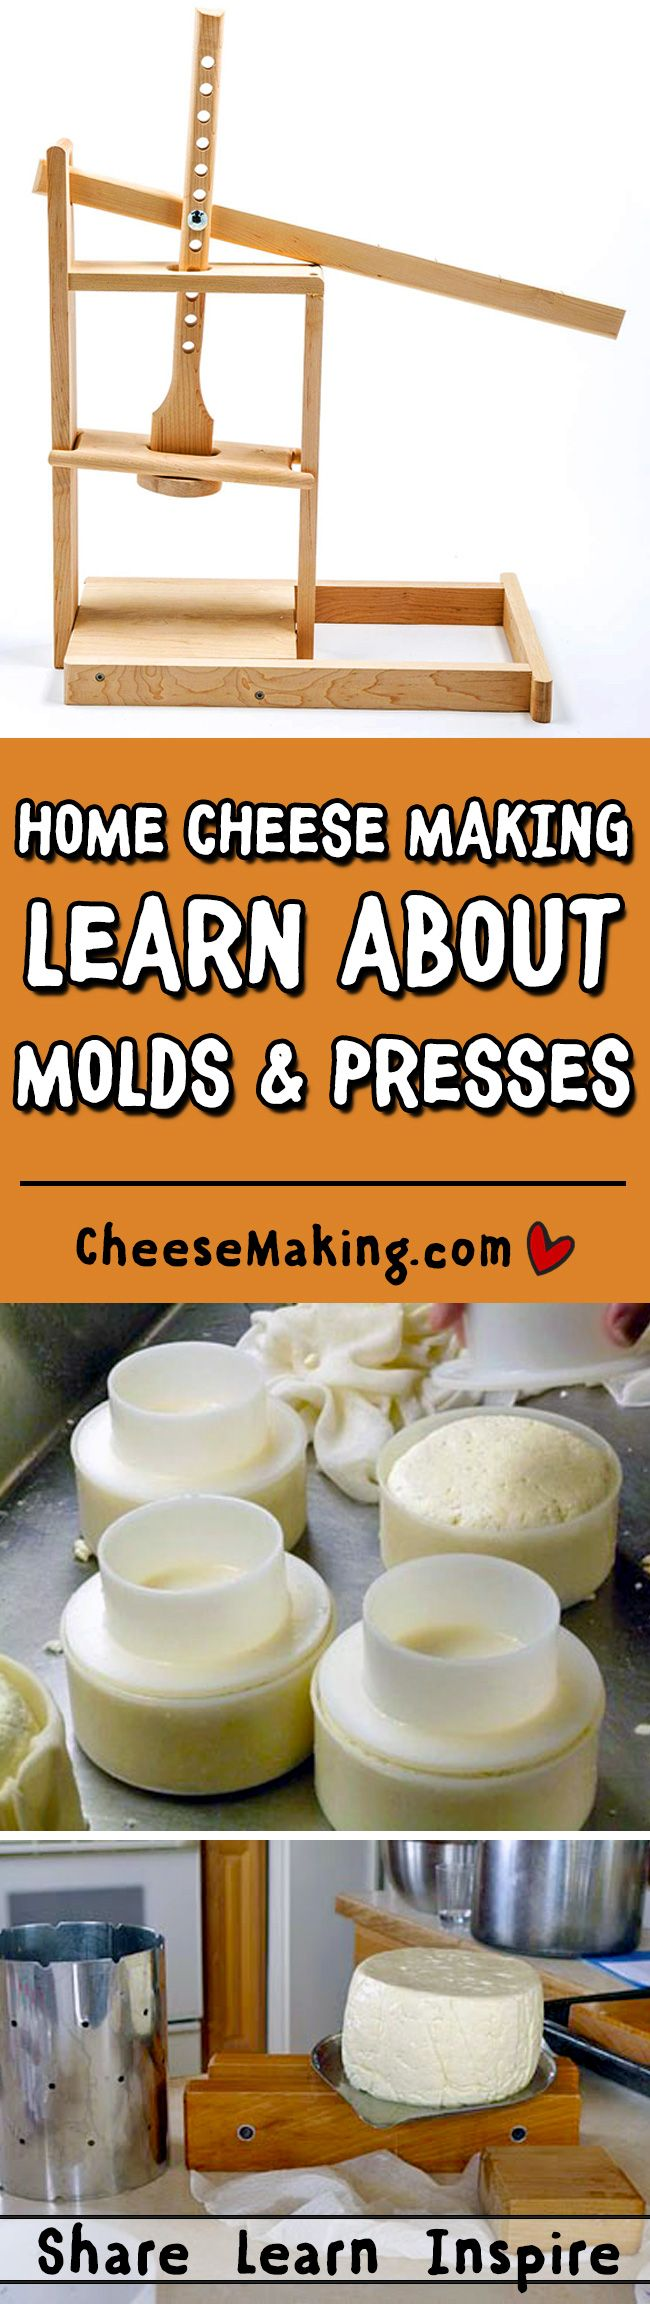 手机壳定制different kinds of shoes Molding amp Pressing Cheese FAQ How to Make Cheese Cheesemaking com